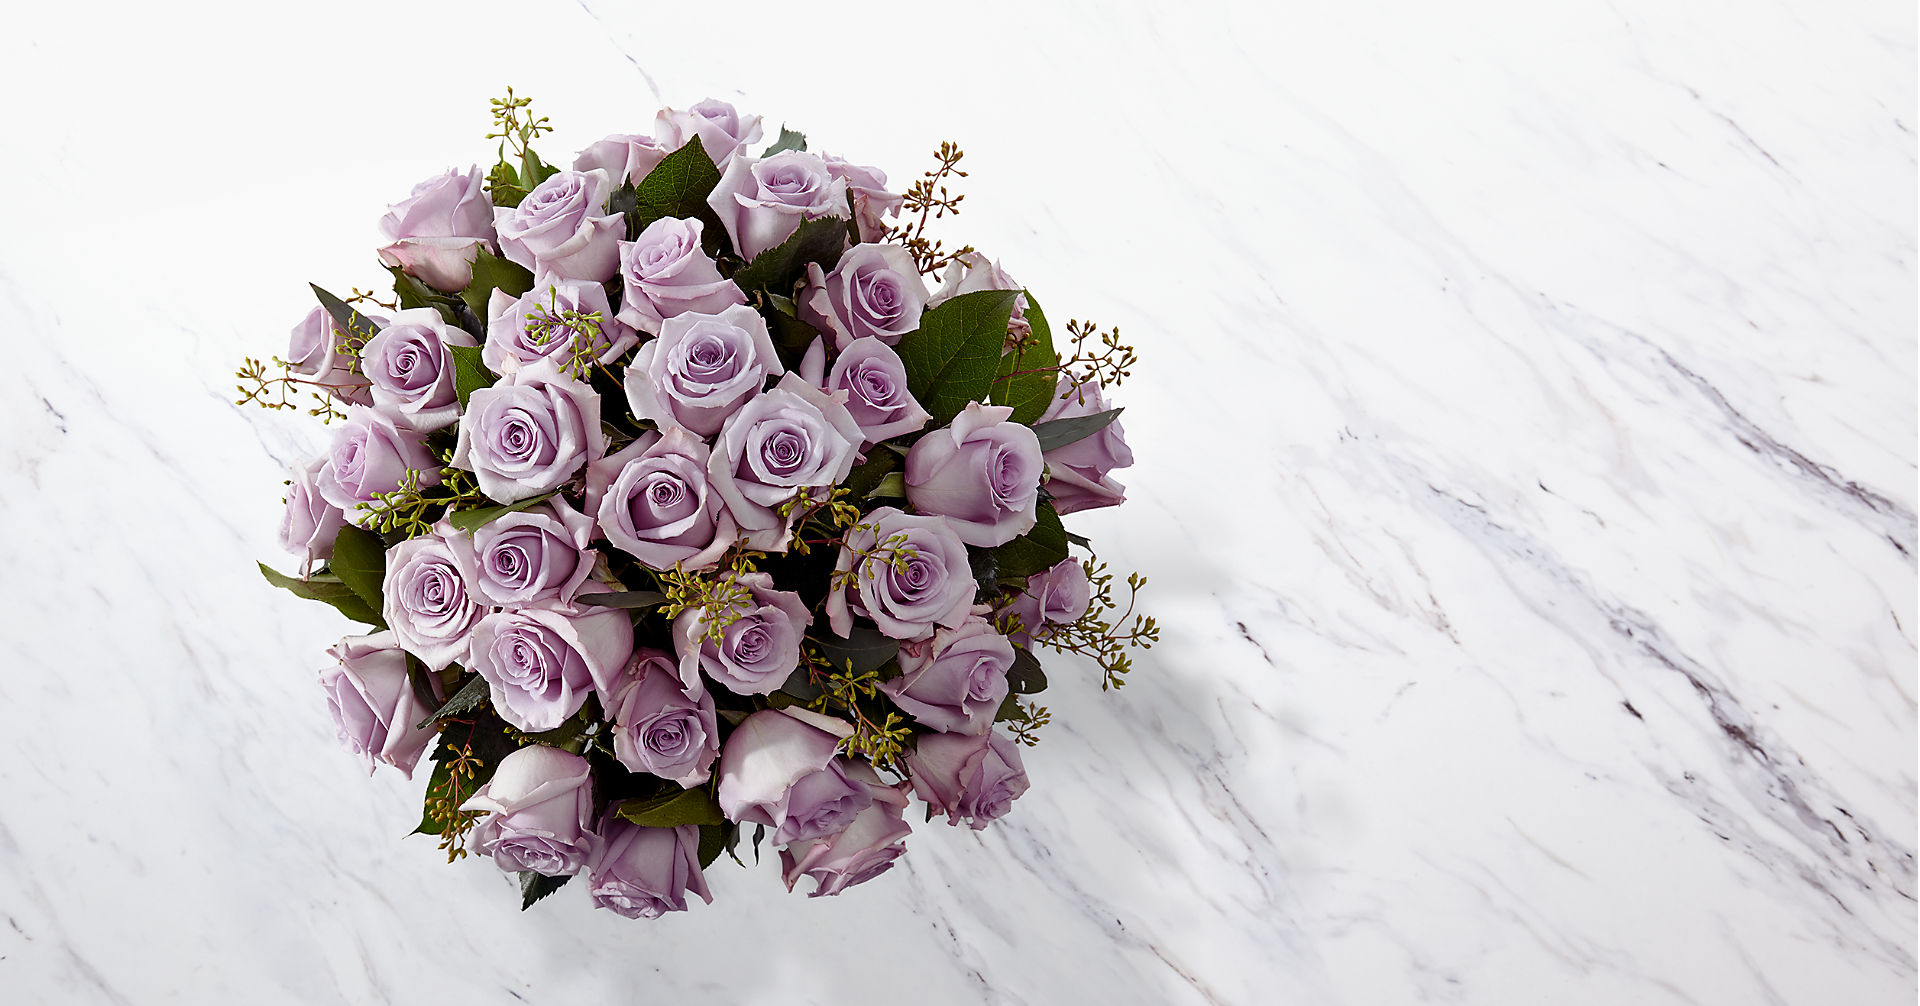 The Lavender Rose Bouquet - 36 Stems - VASE INCLUDED - Image 2 Of 2